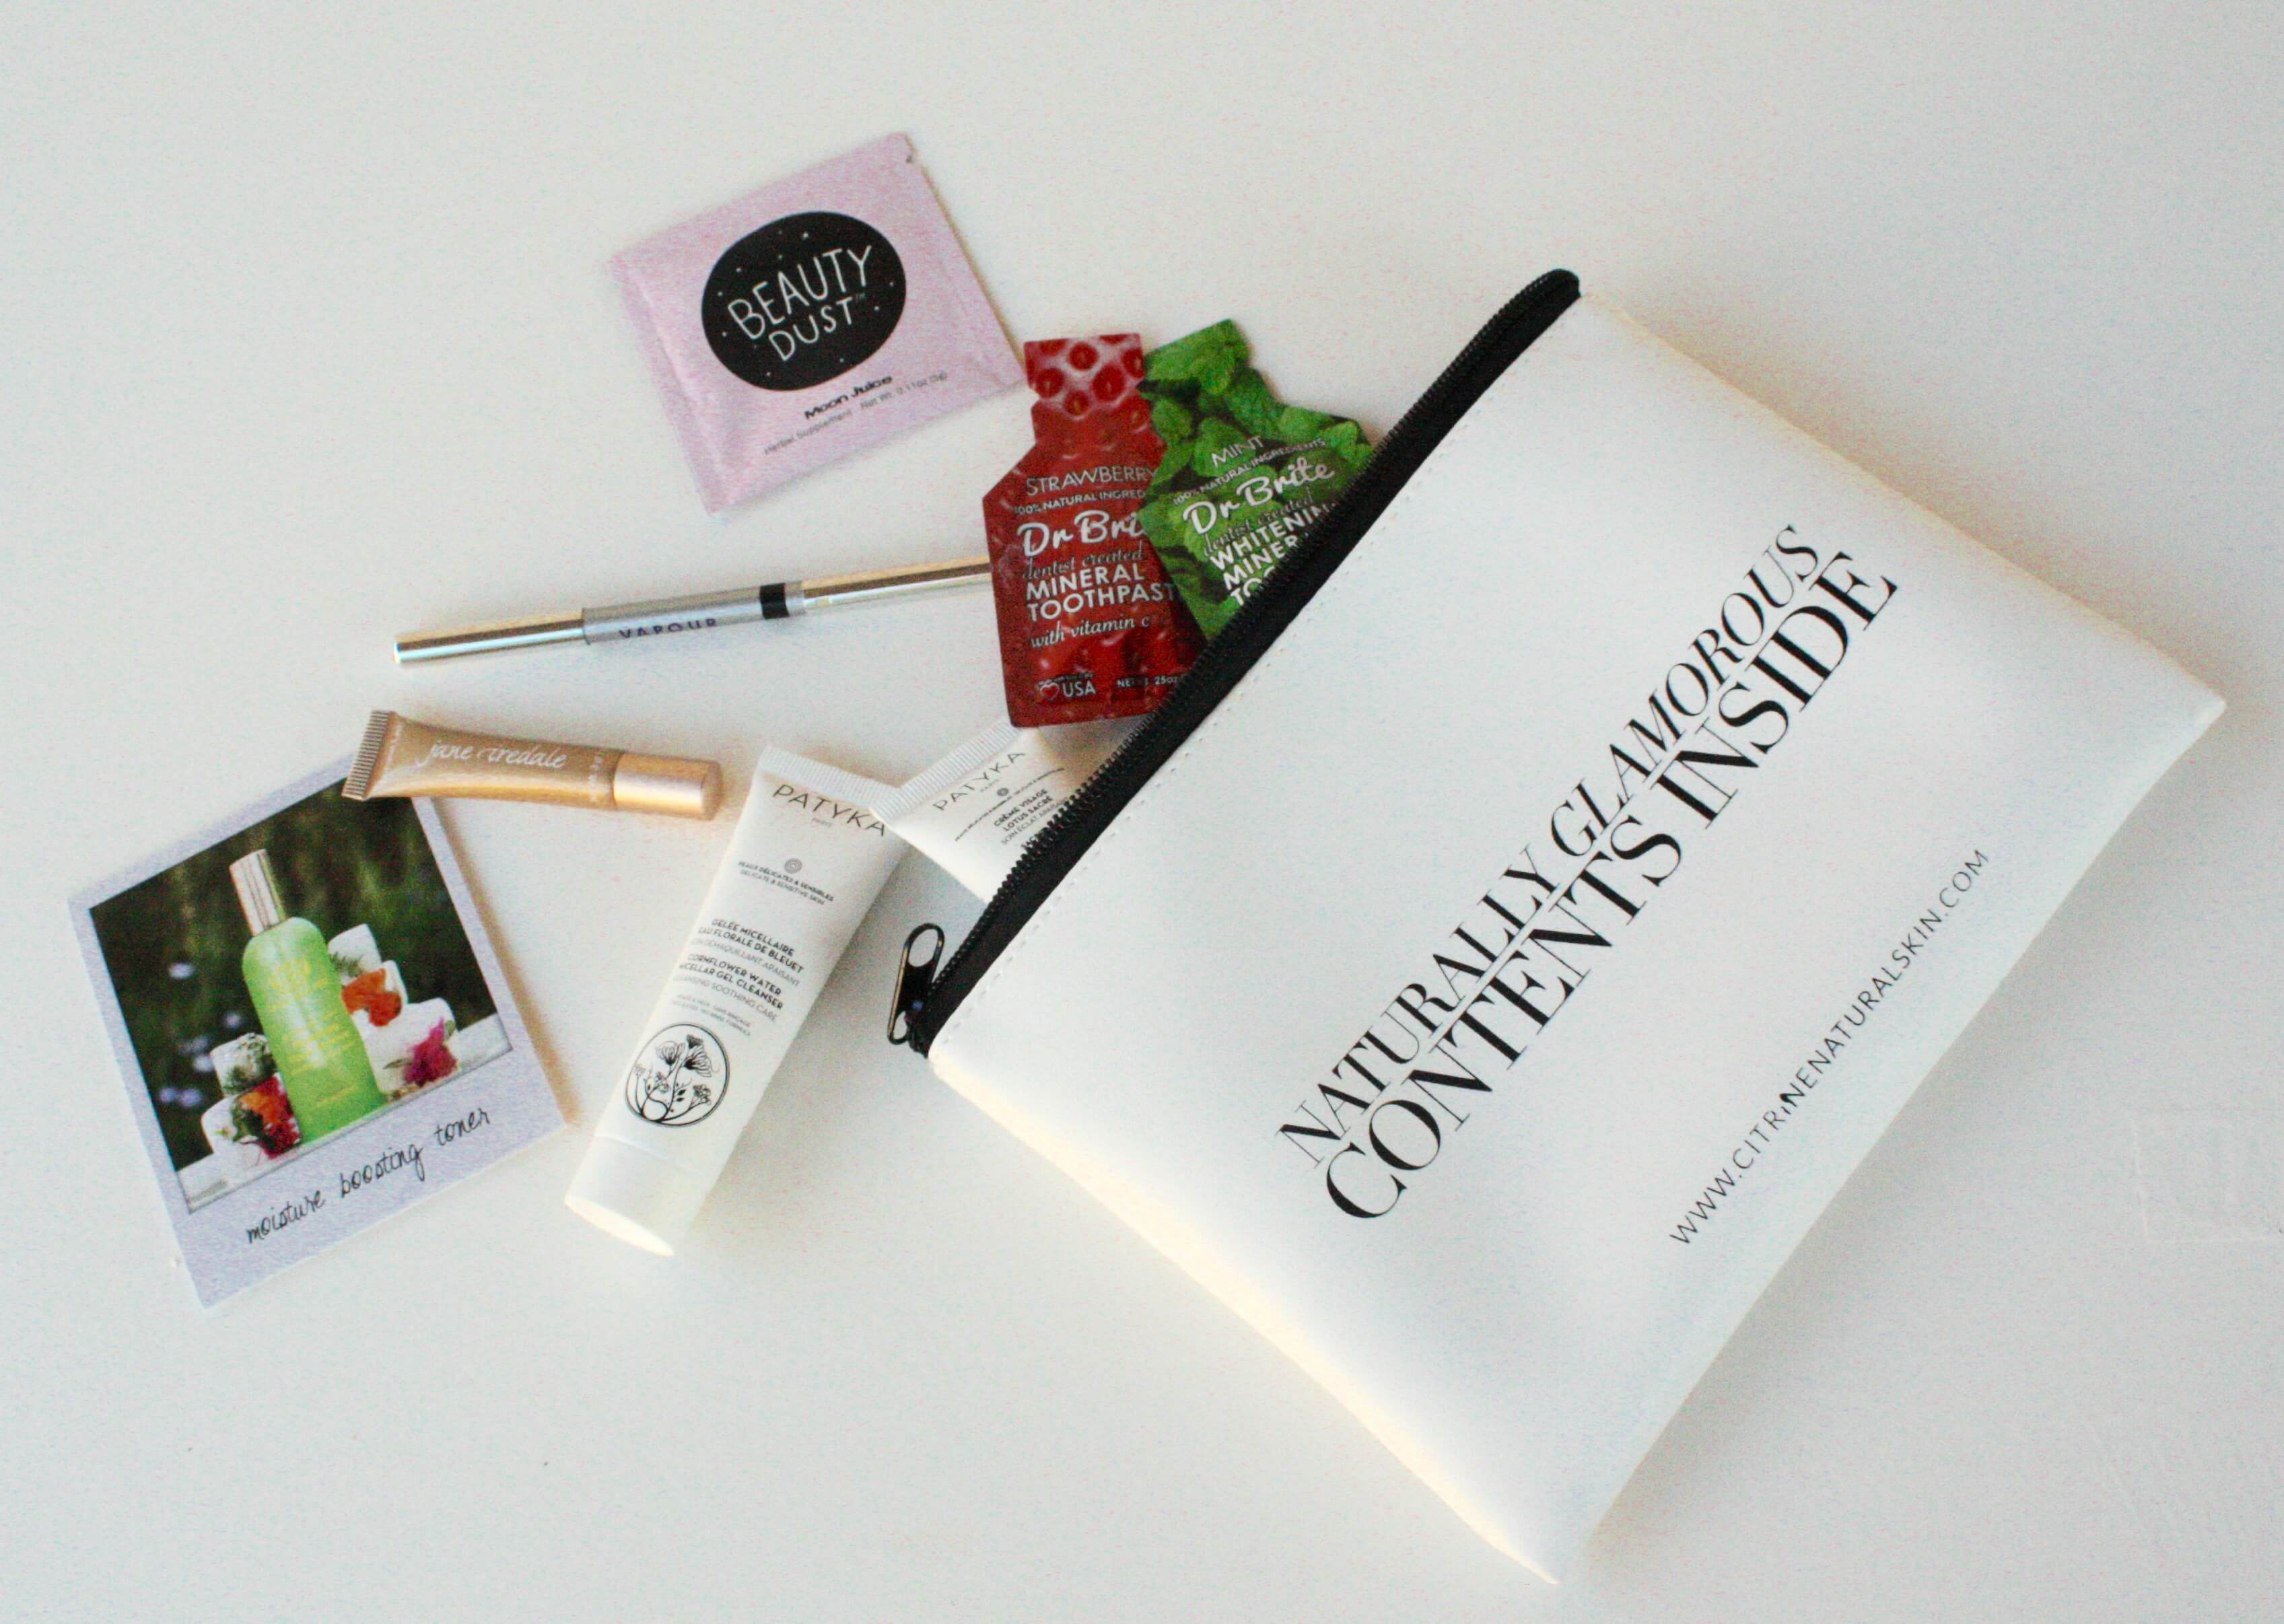 Ethical Beauty Girl's Night In With Organic Bunny and Citrine